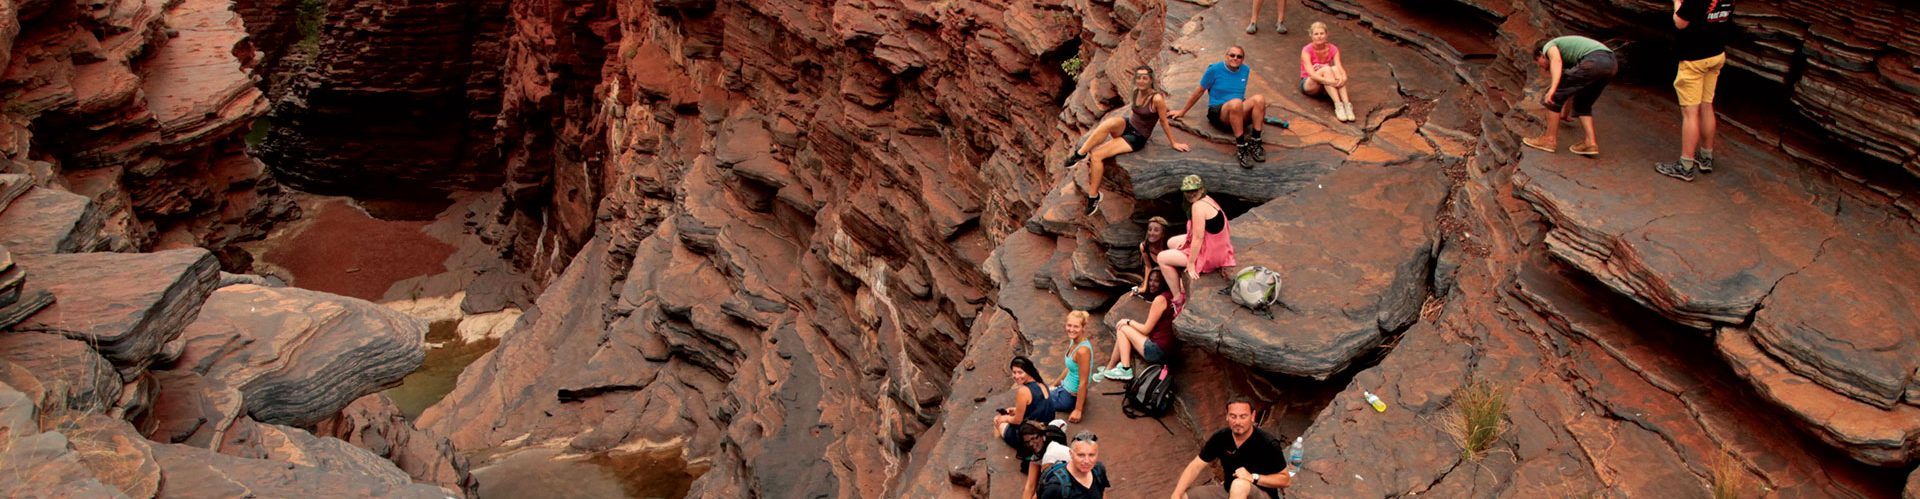 Trekking in Karijini National Park